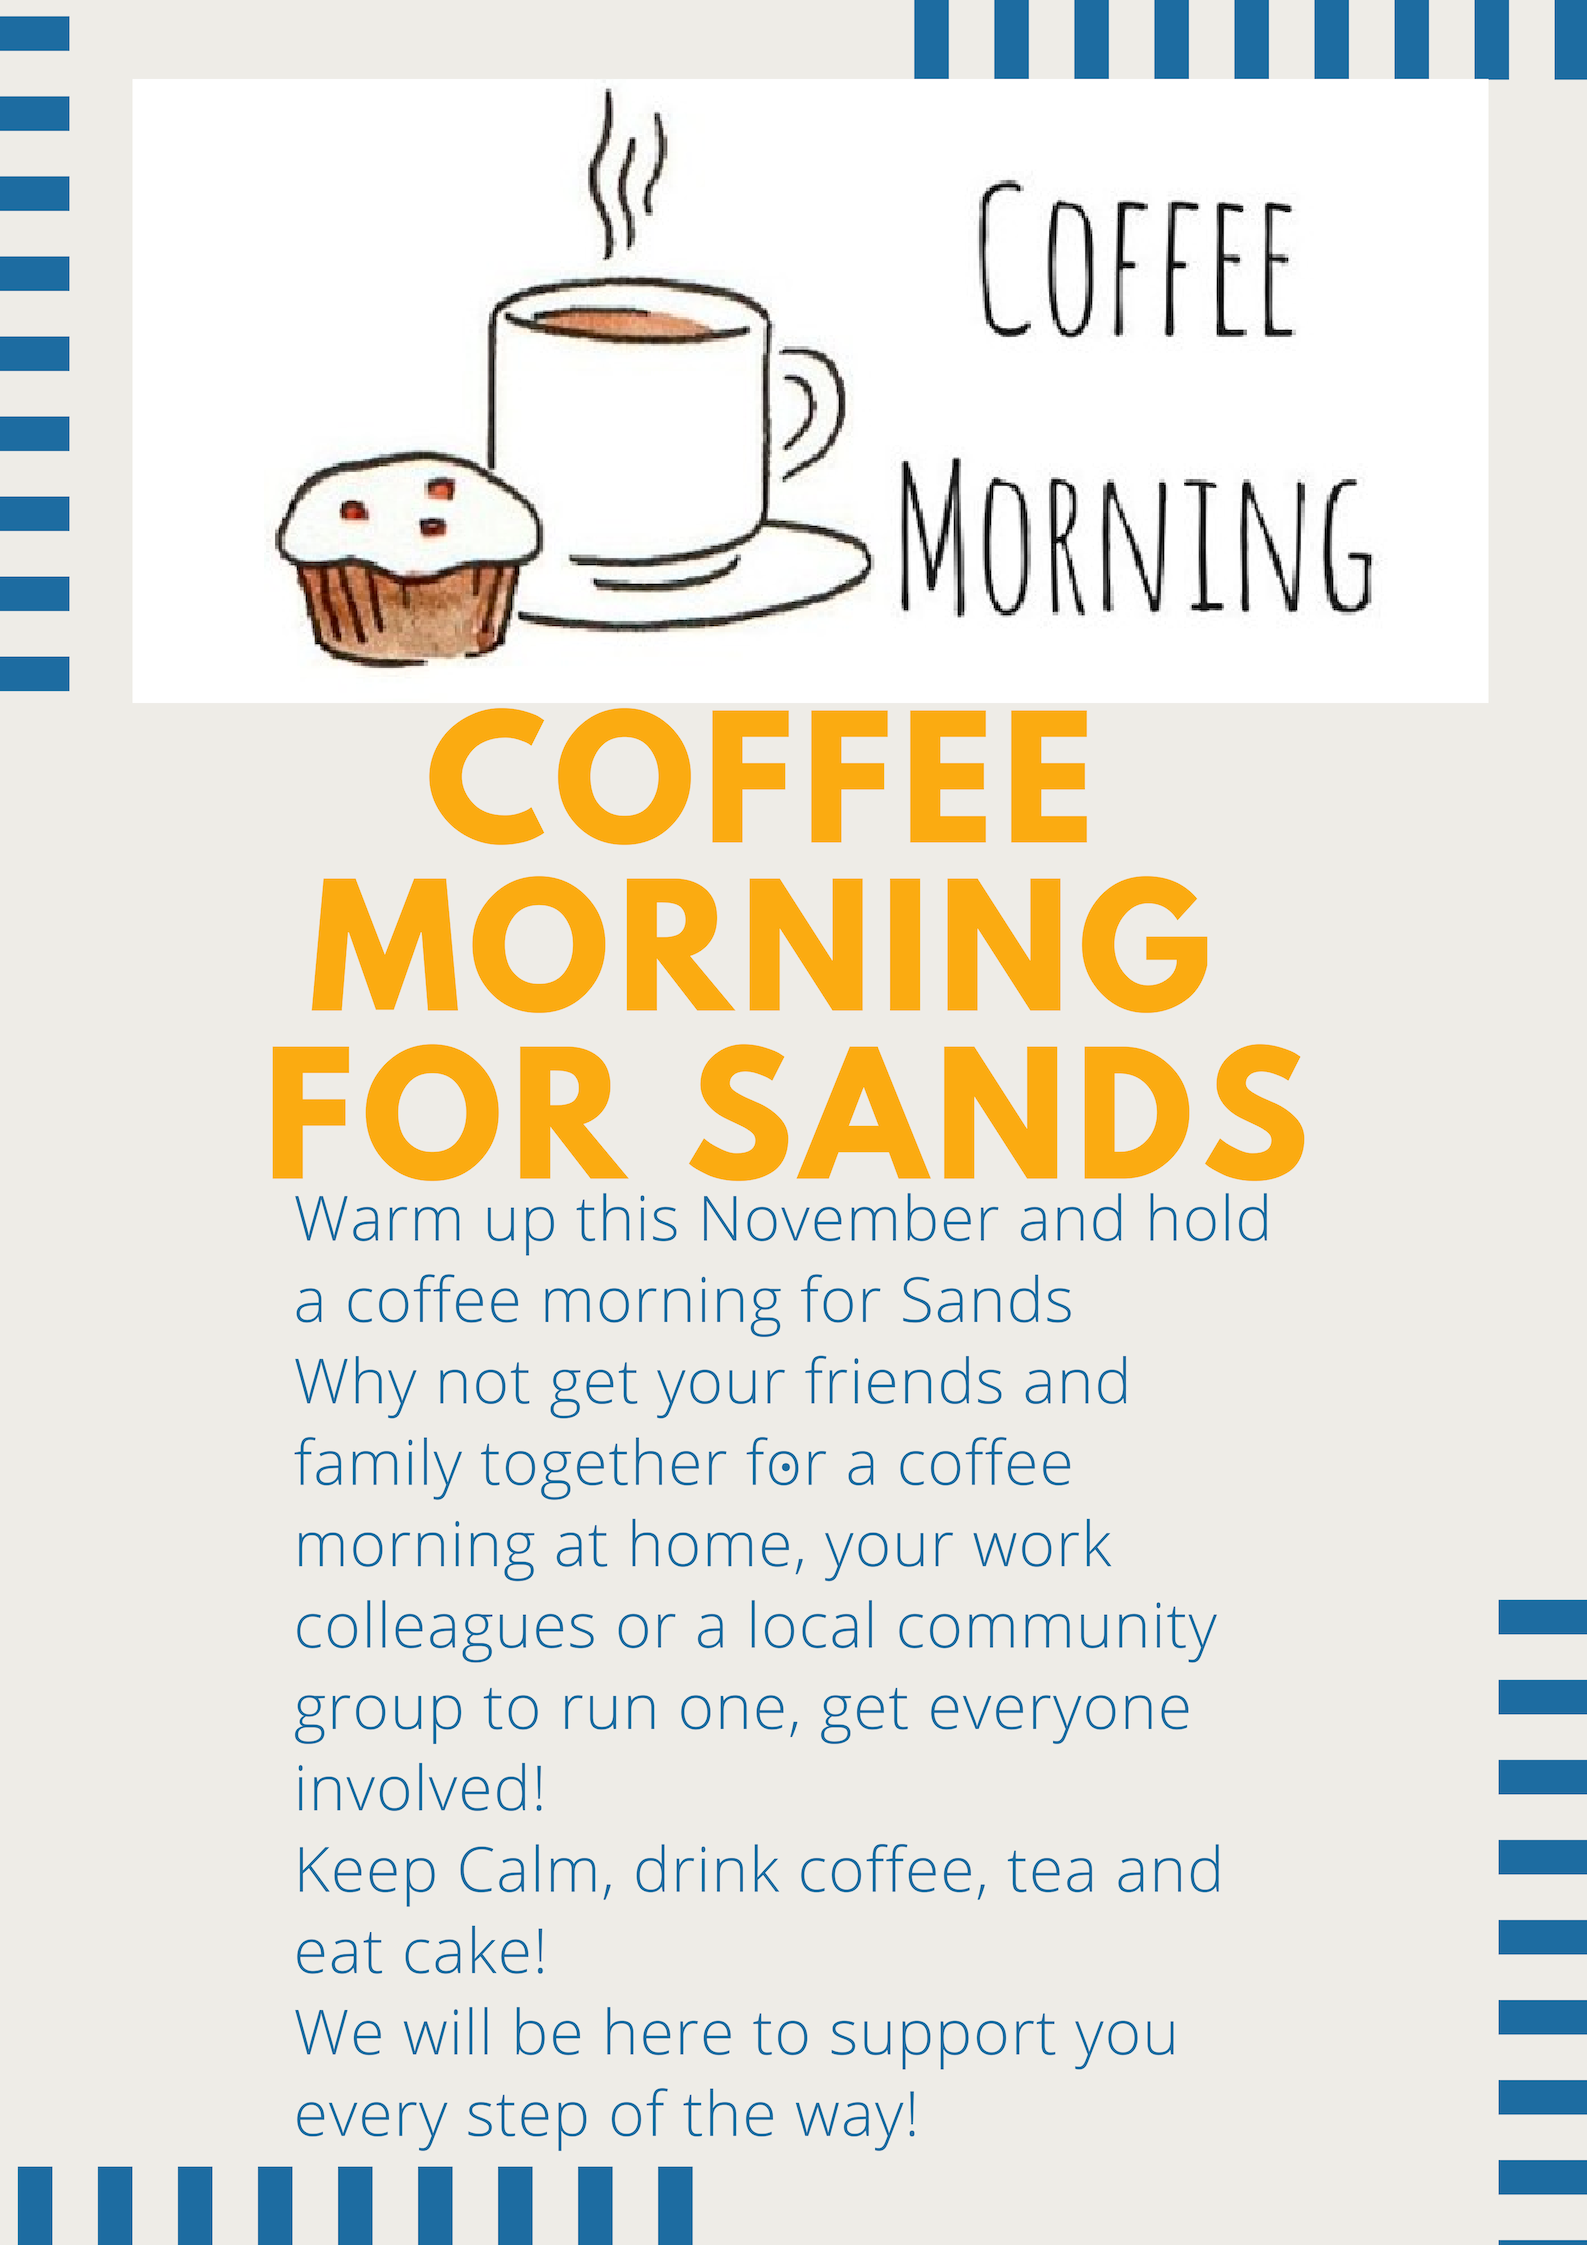 Coffee-Morning-for-Sands-002